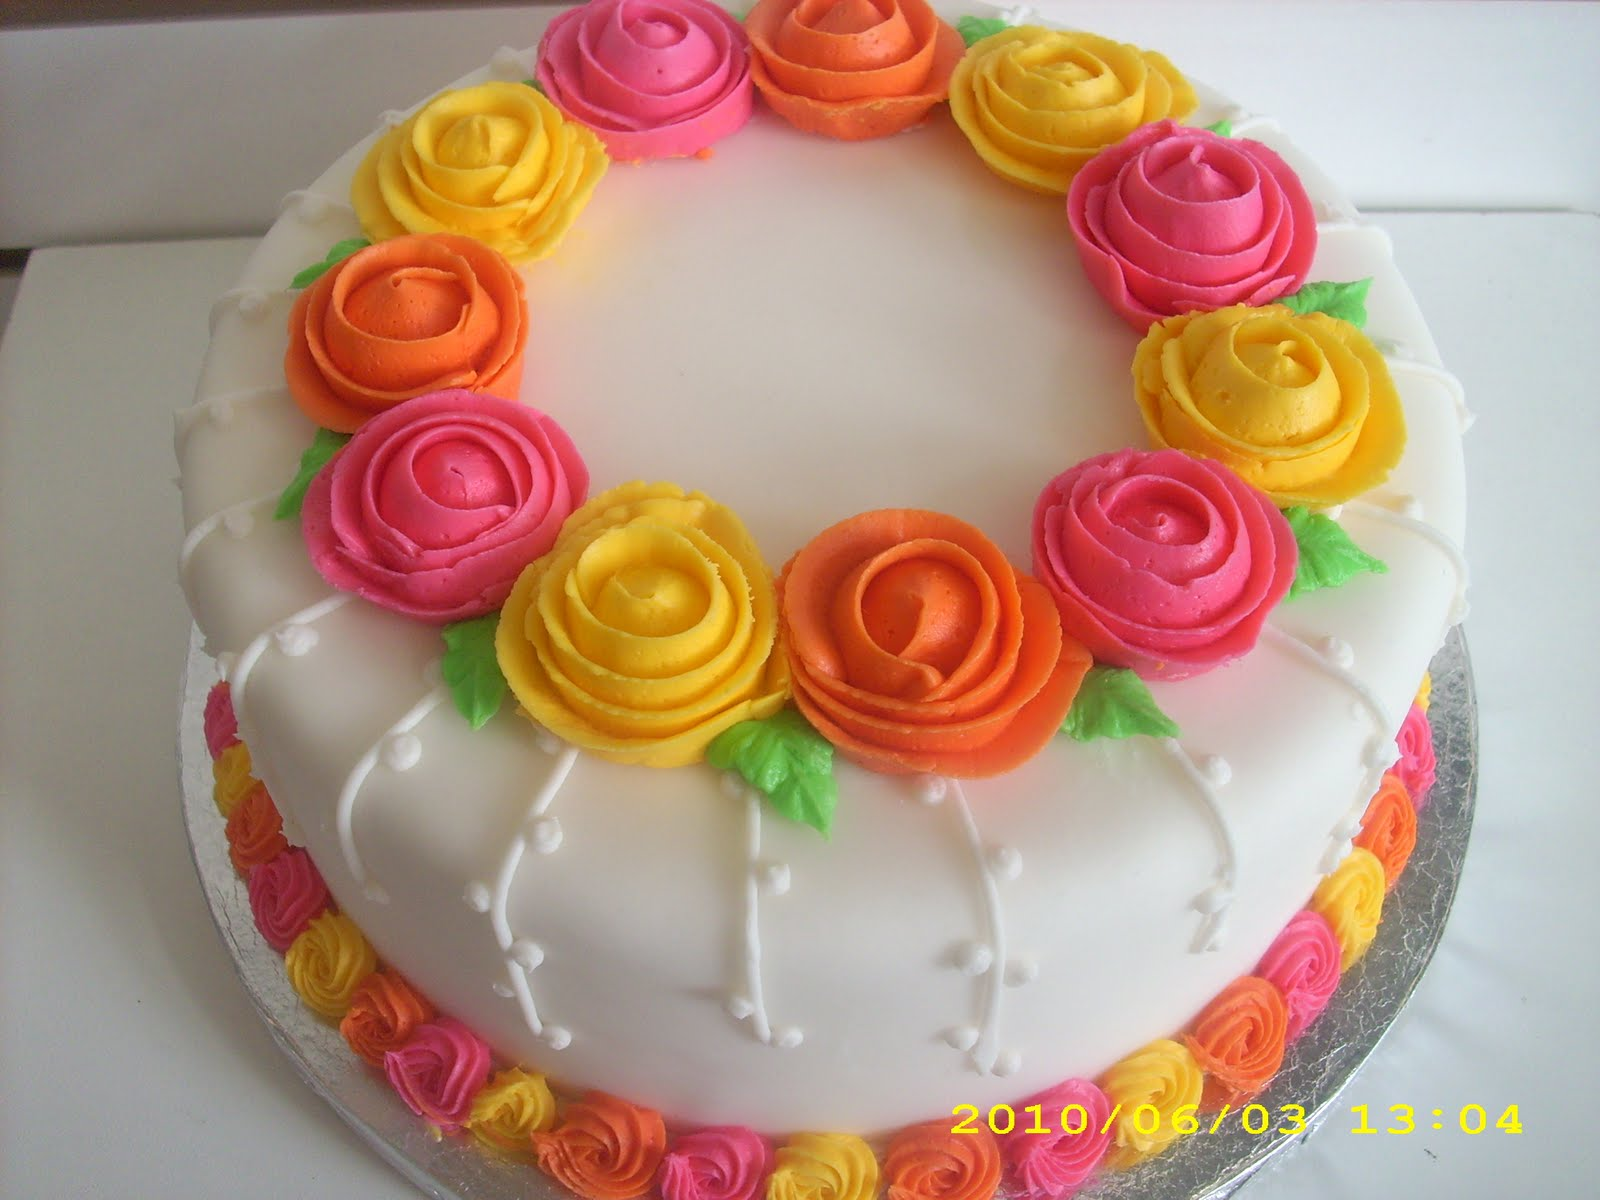 Cake Decorating Ideas Photos : Cake Decorating heydanixo